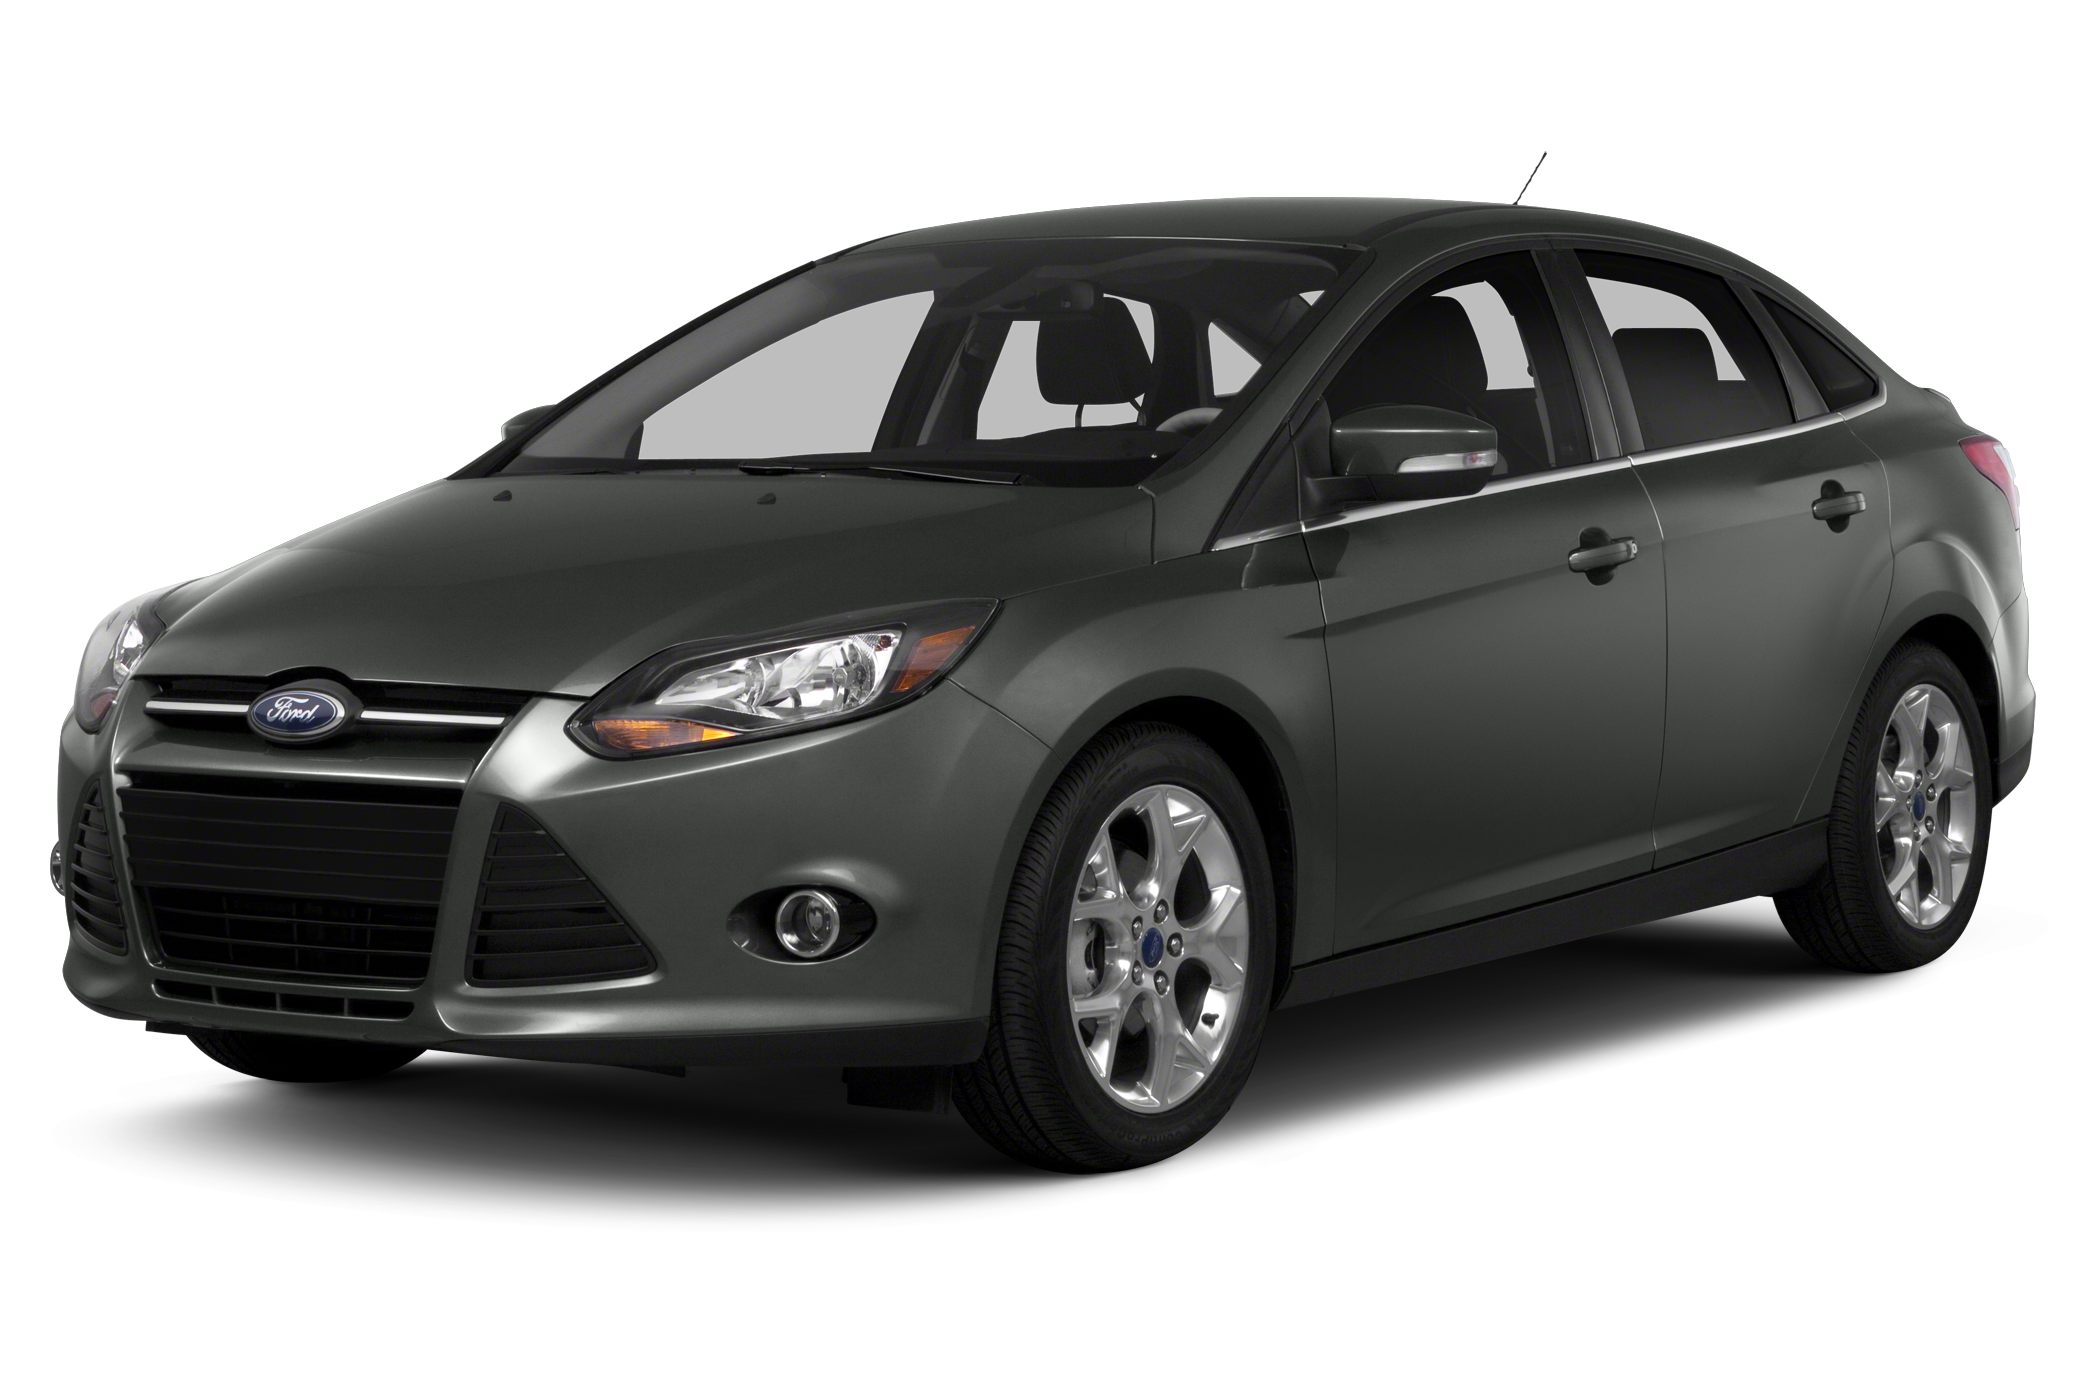 2014 Ford Focus SE Sedan for sale in Crystal River for $17,950 with 18,795 miles.